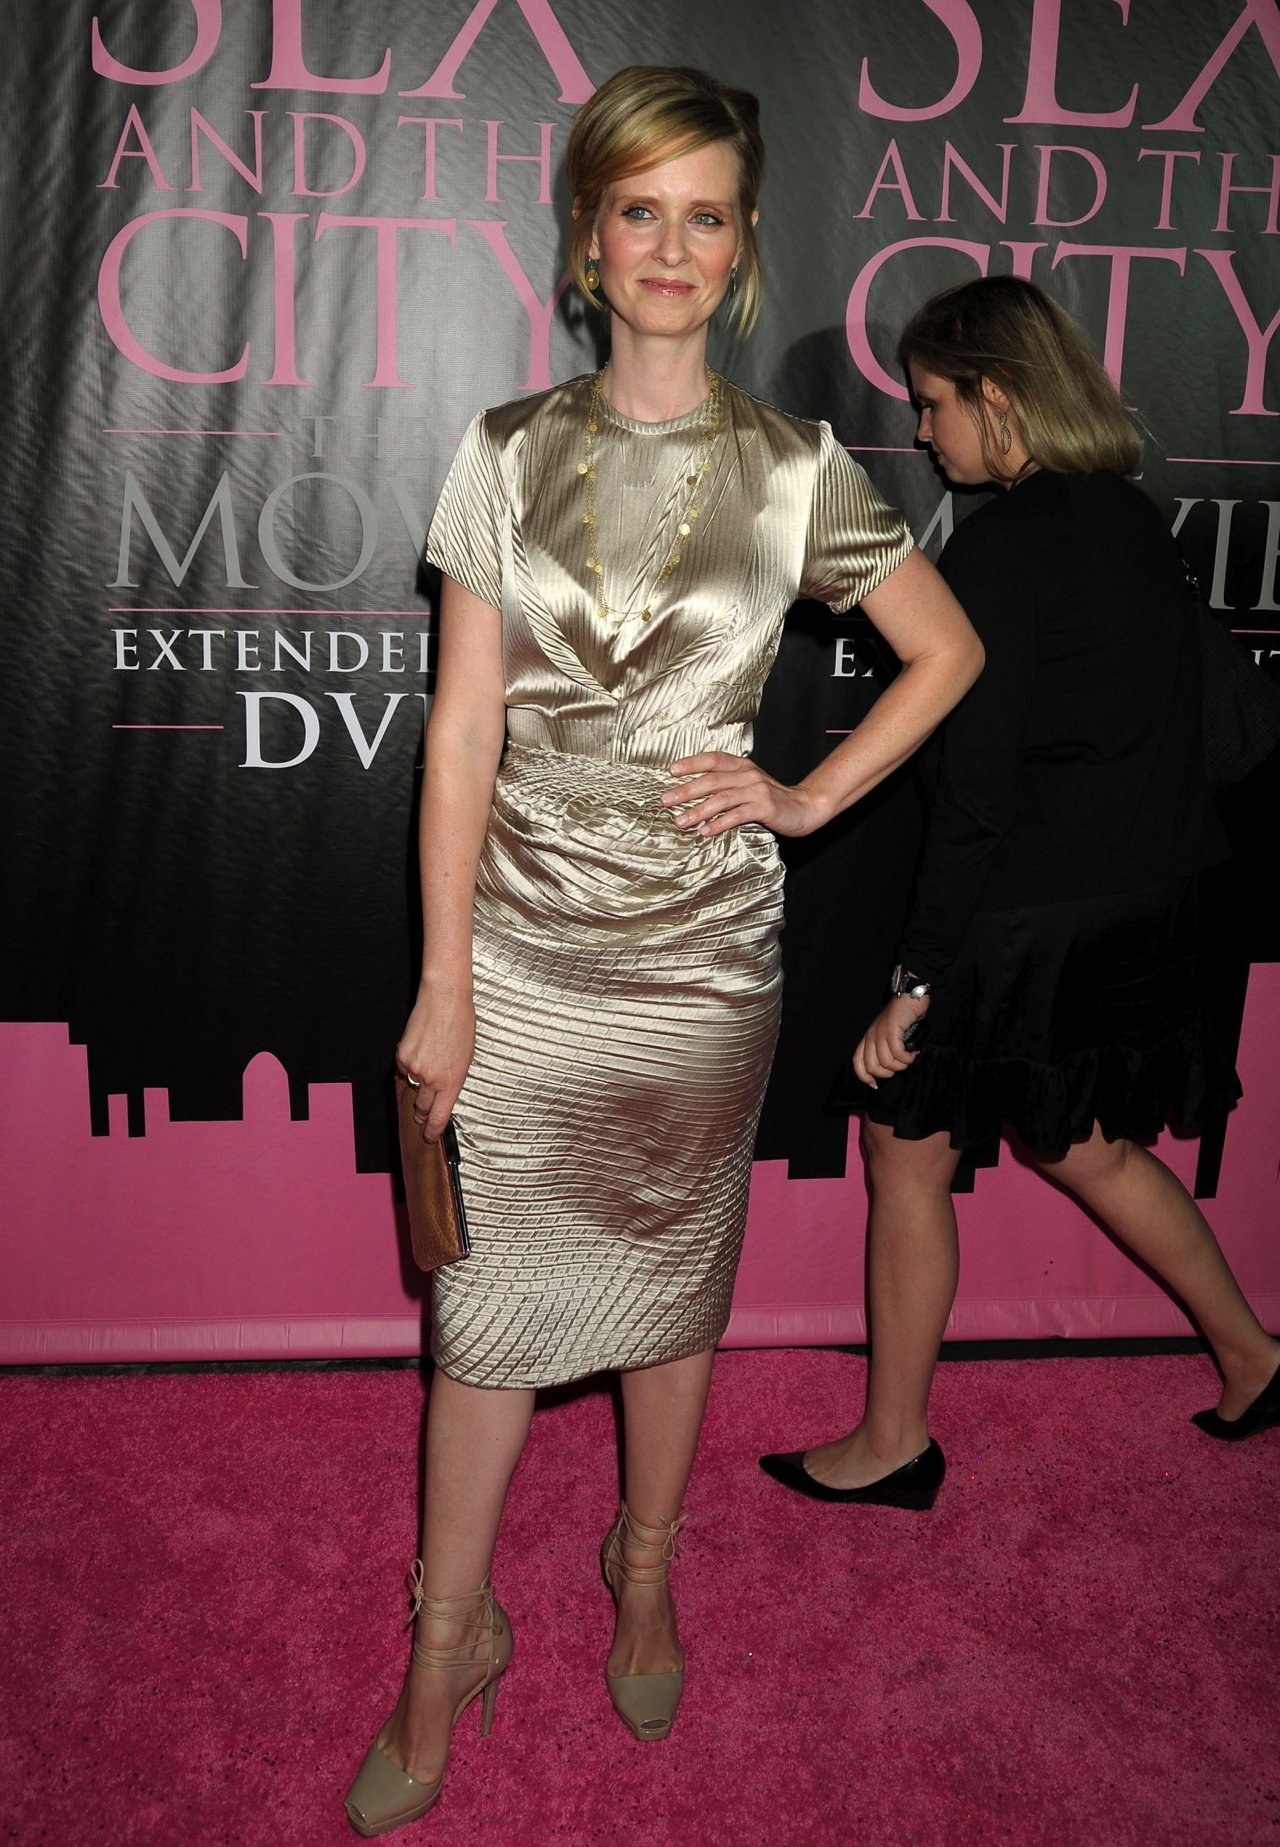 cynthia nixon wallpaper - photo #41